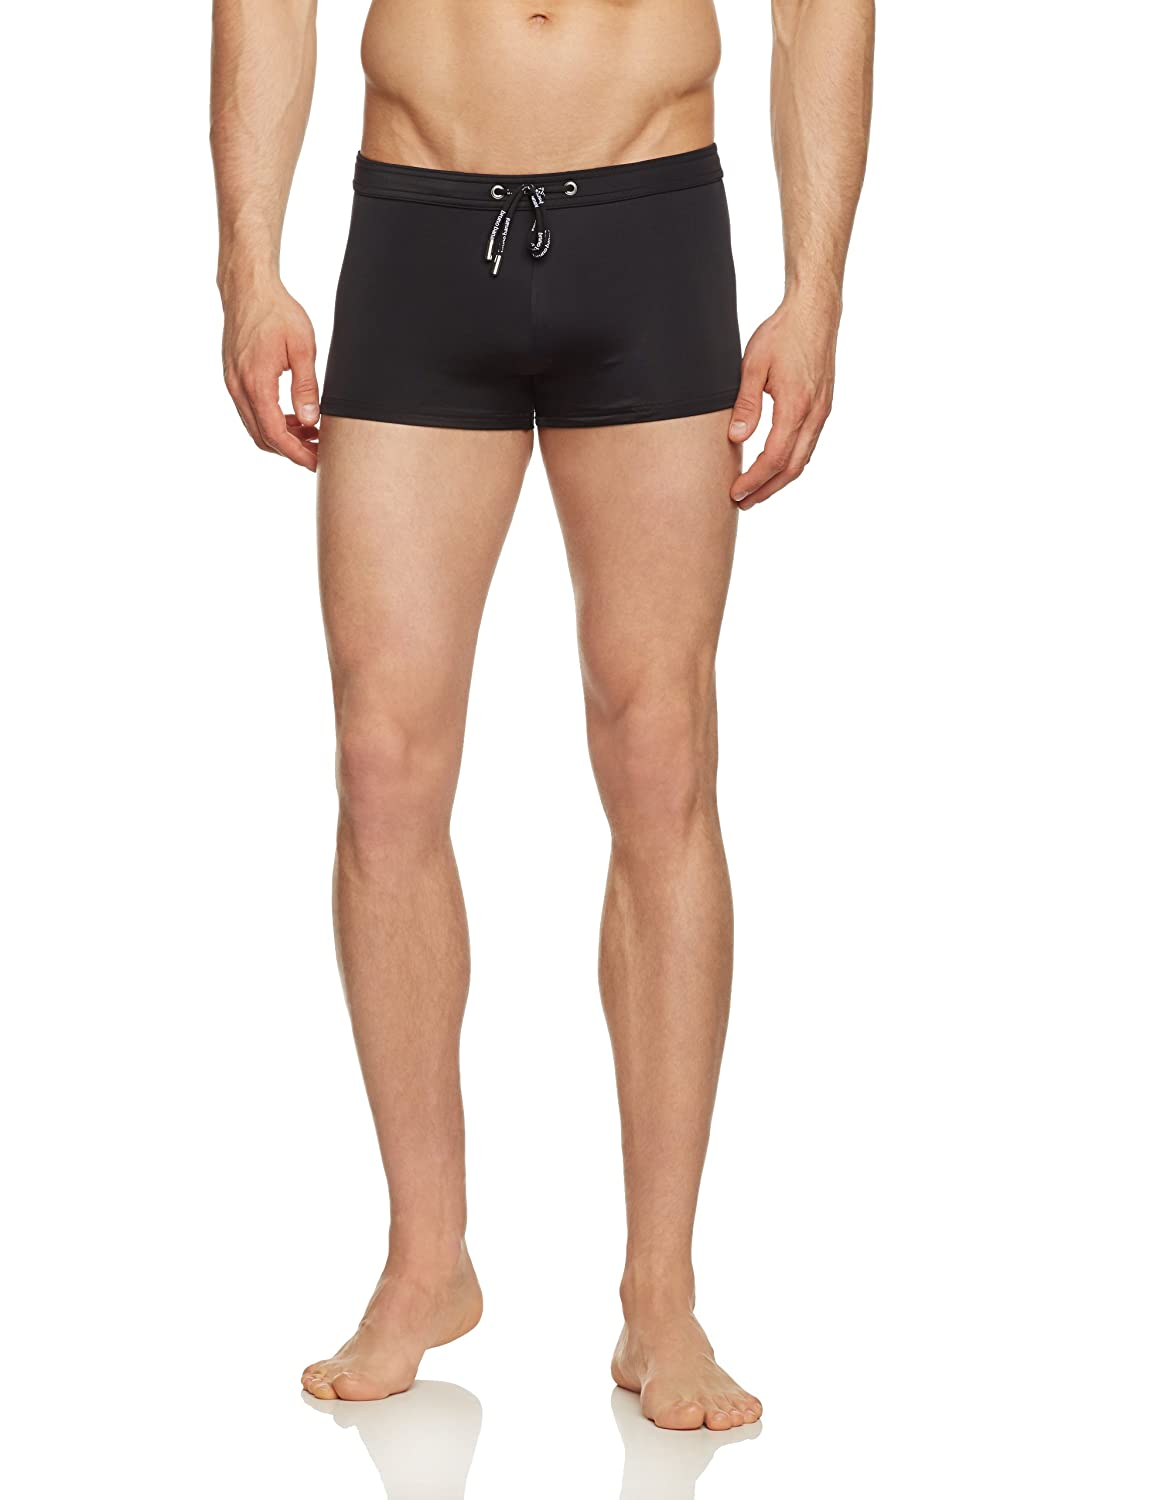 Bruno Banani Men's Trunks bruno banani underwear GmbH 2201-1115 7